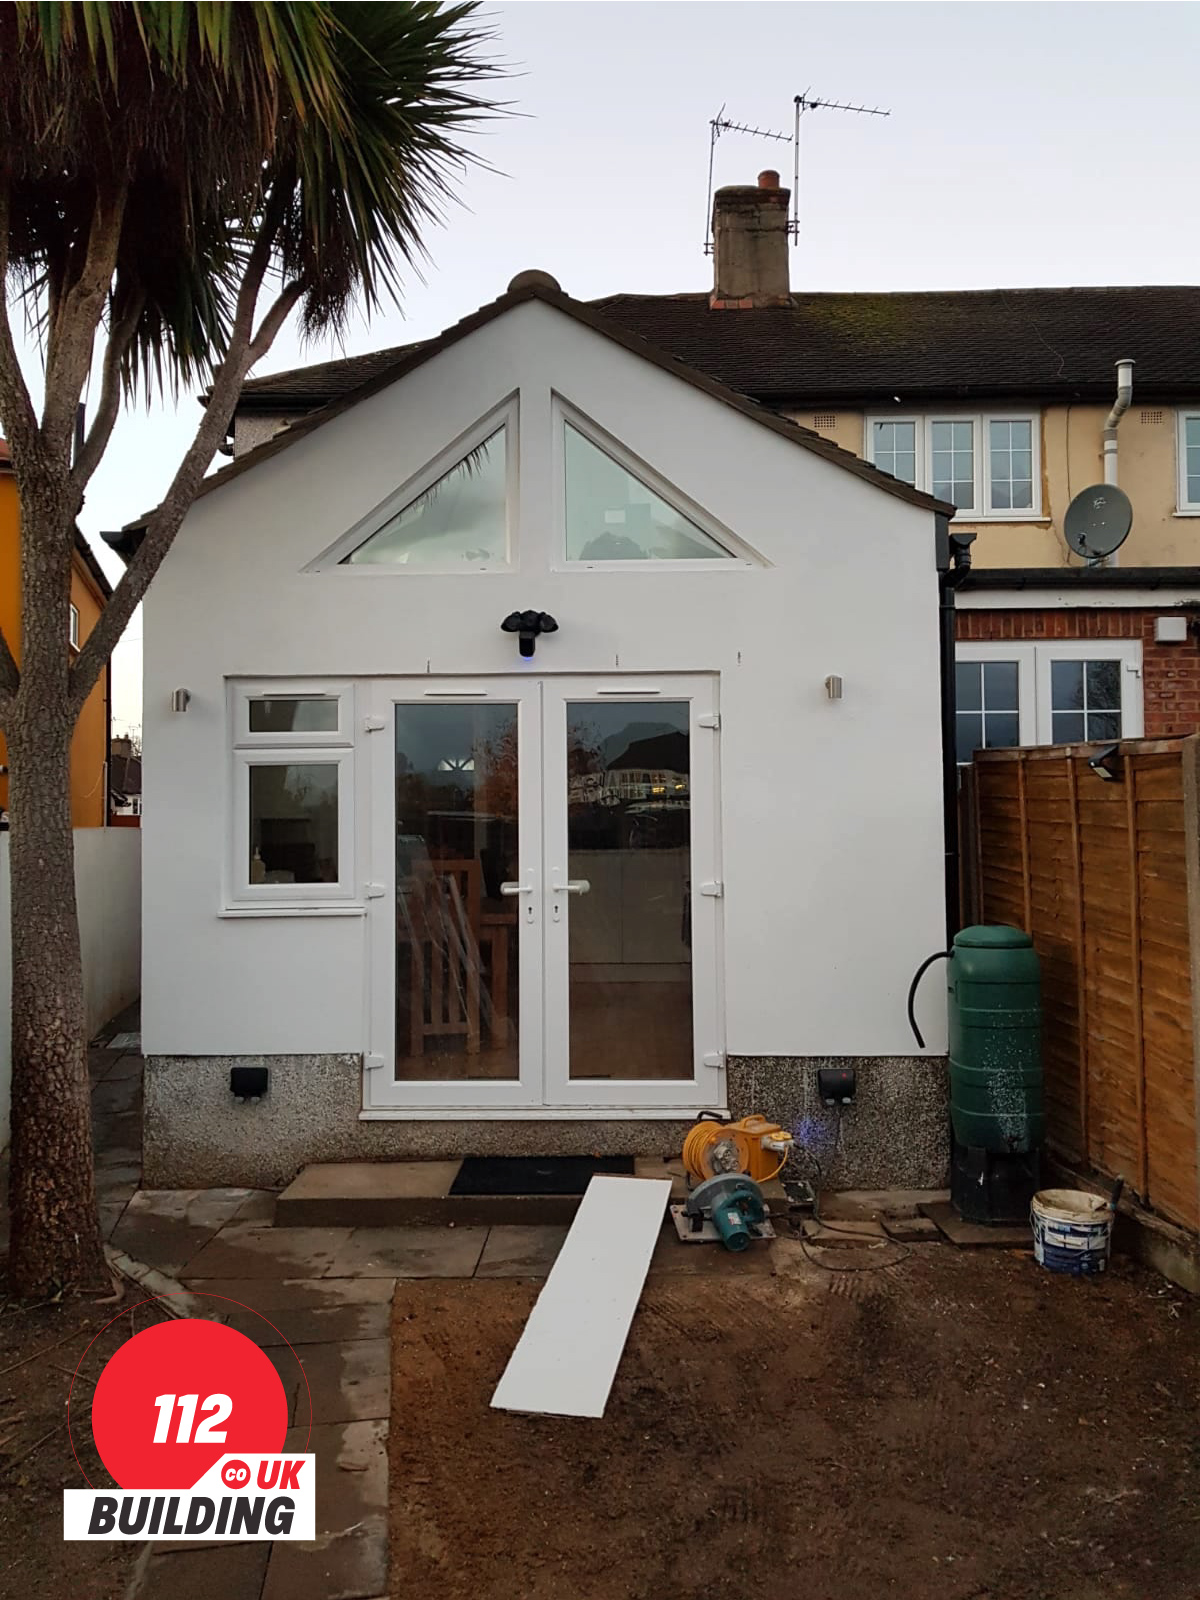 Extension builders  in Barking and Dagenham